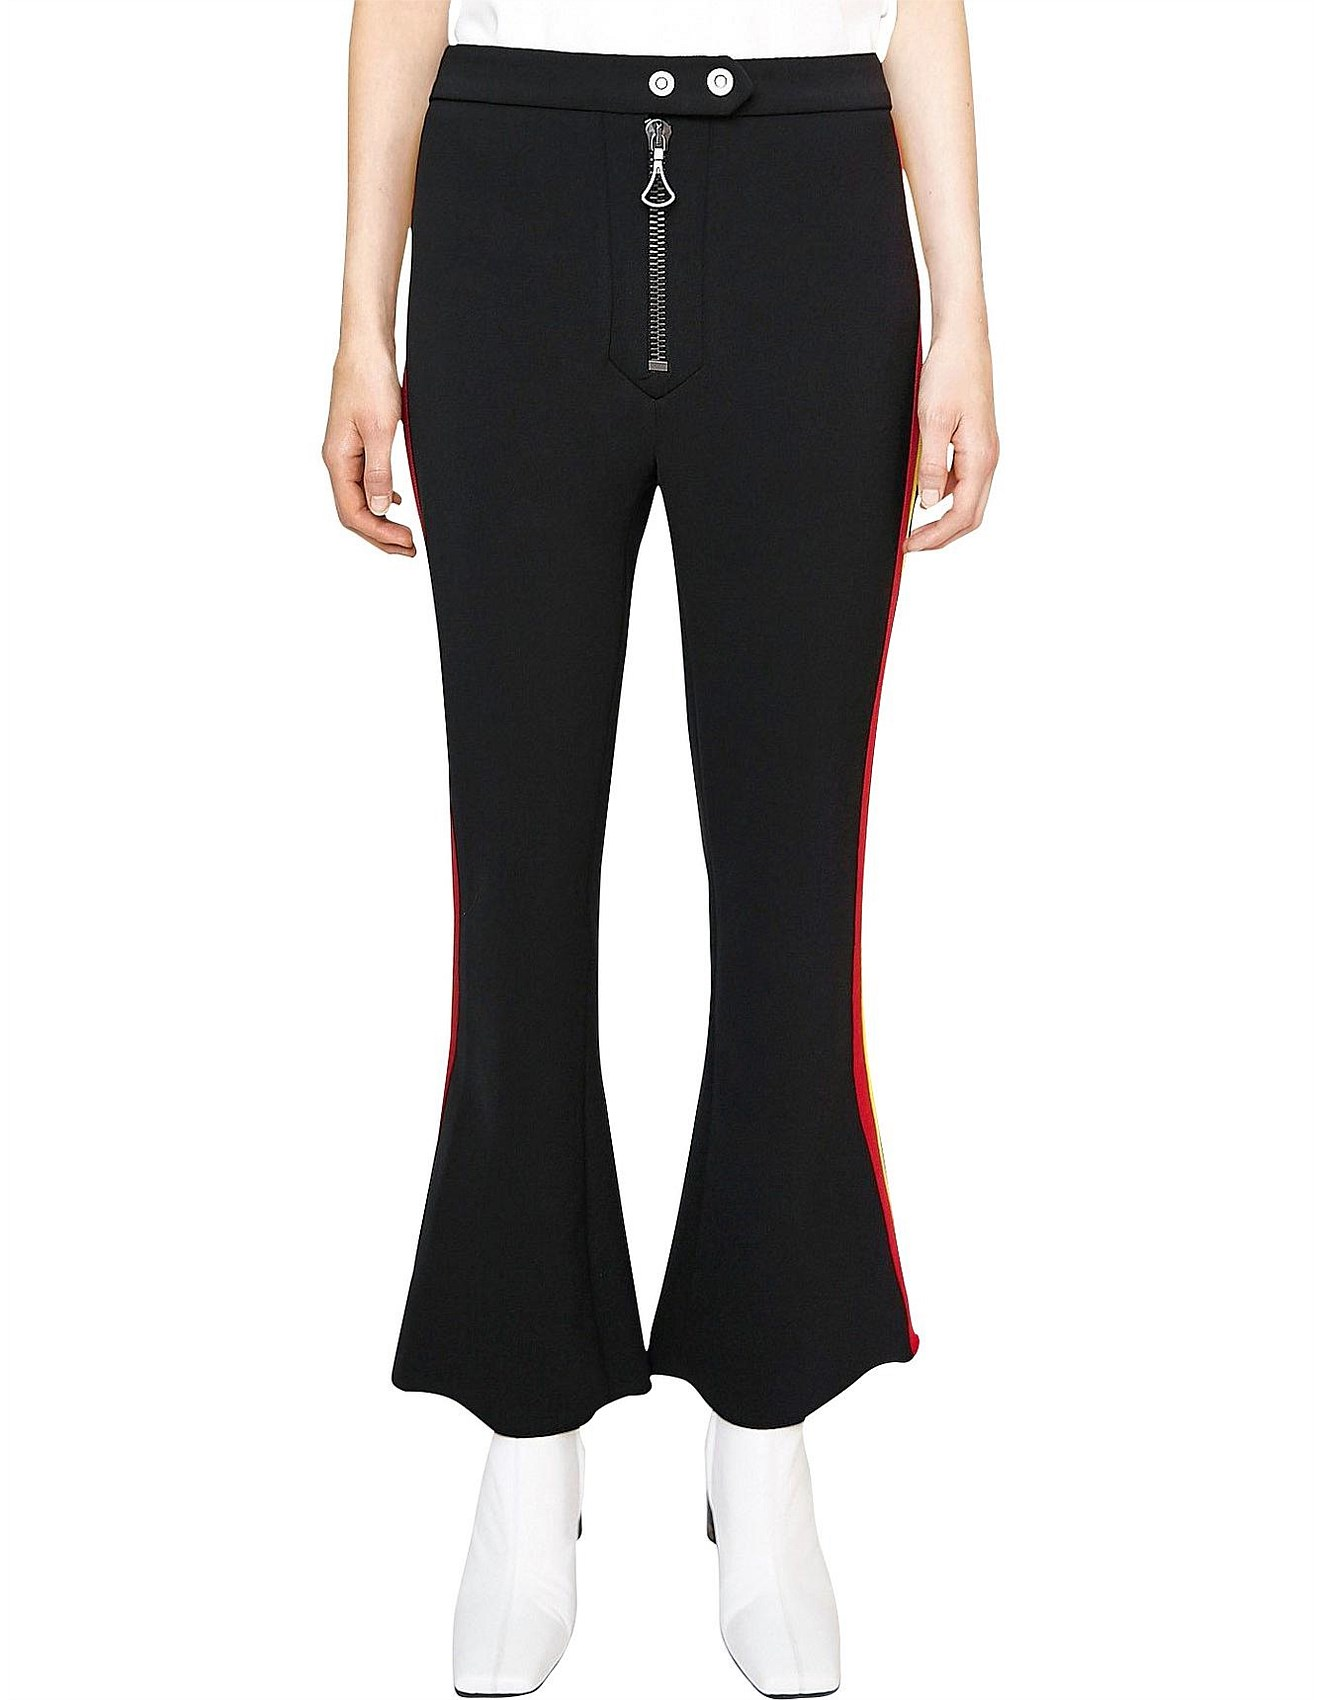 8feb7e6bc5 Women's Pants & Shorts | Women's Clothing Online | David Jones - Rivera  Cropped Biker Flare With Tape